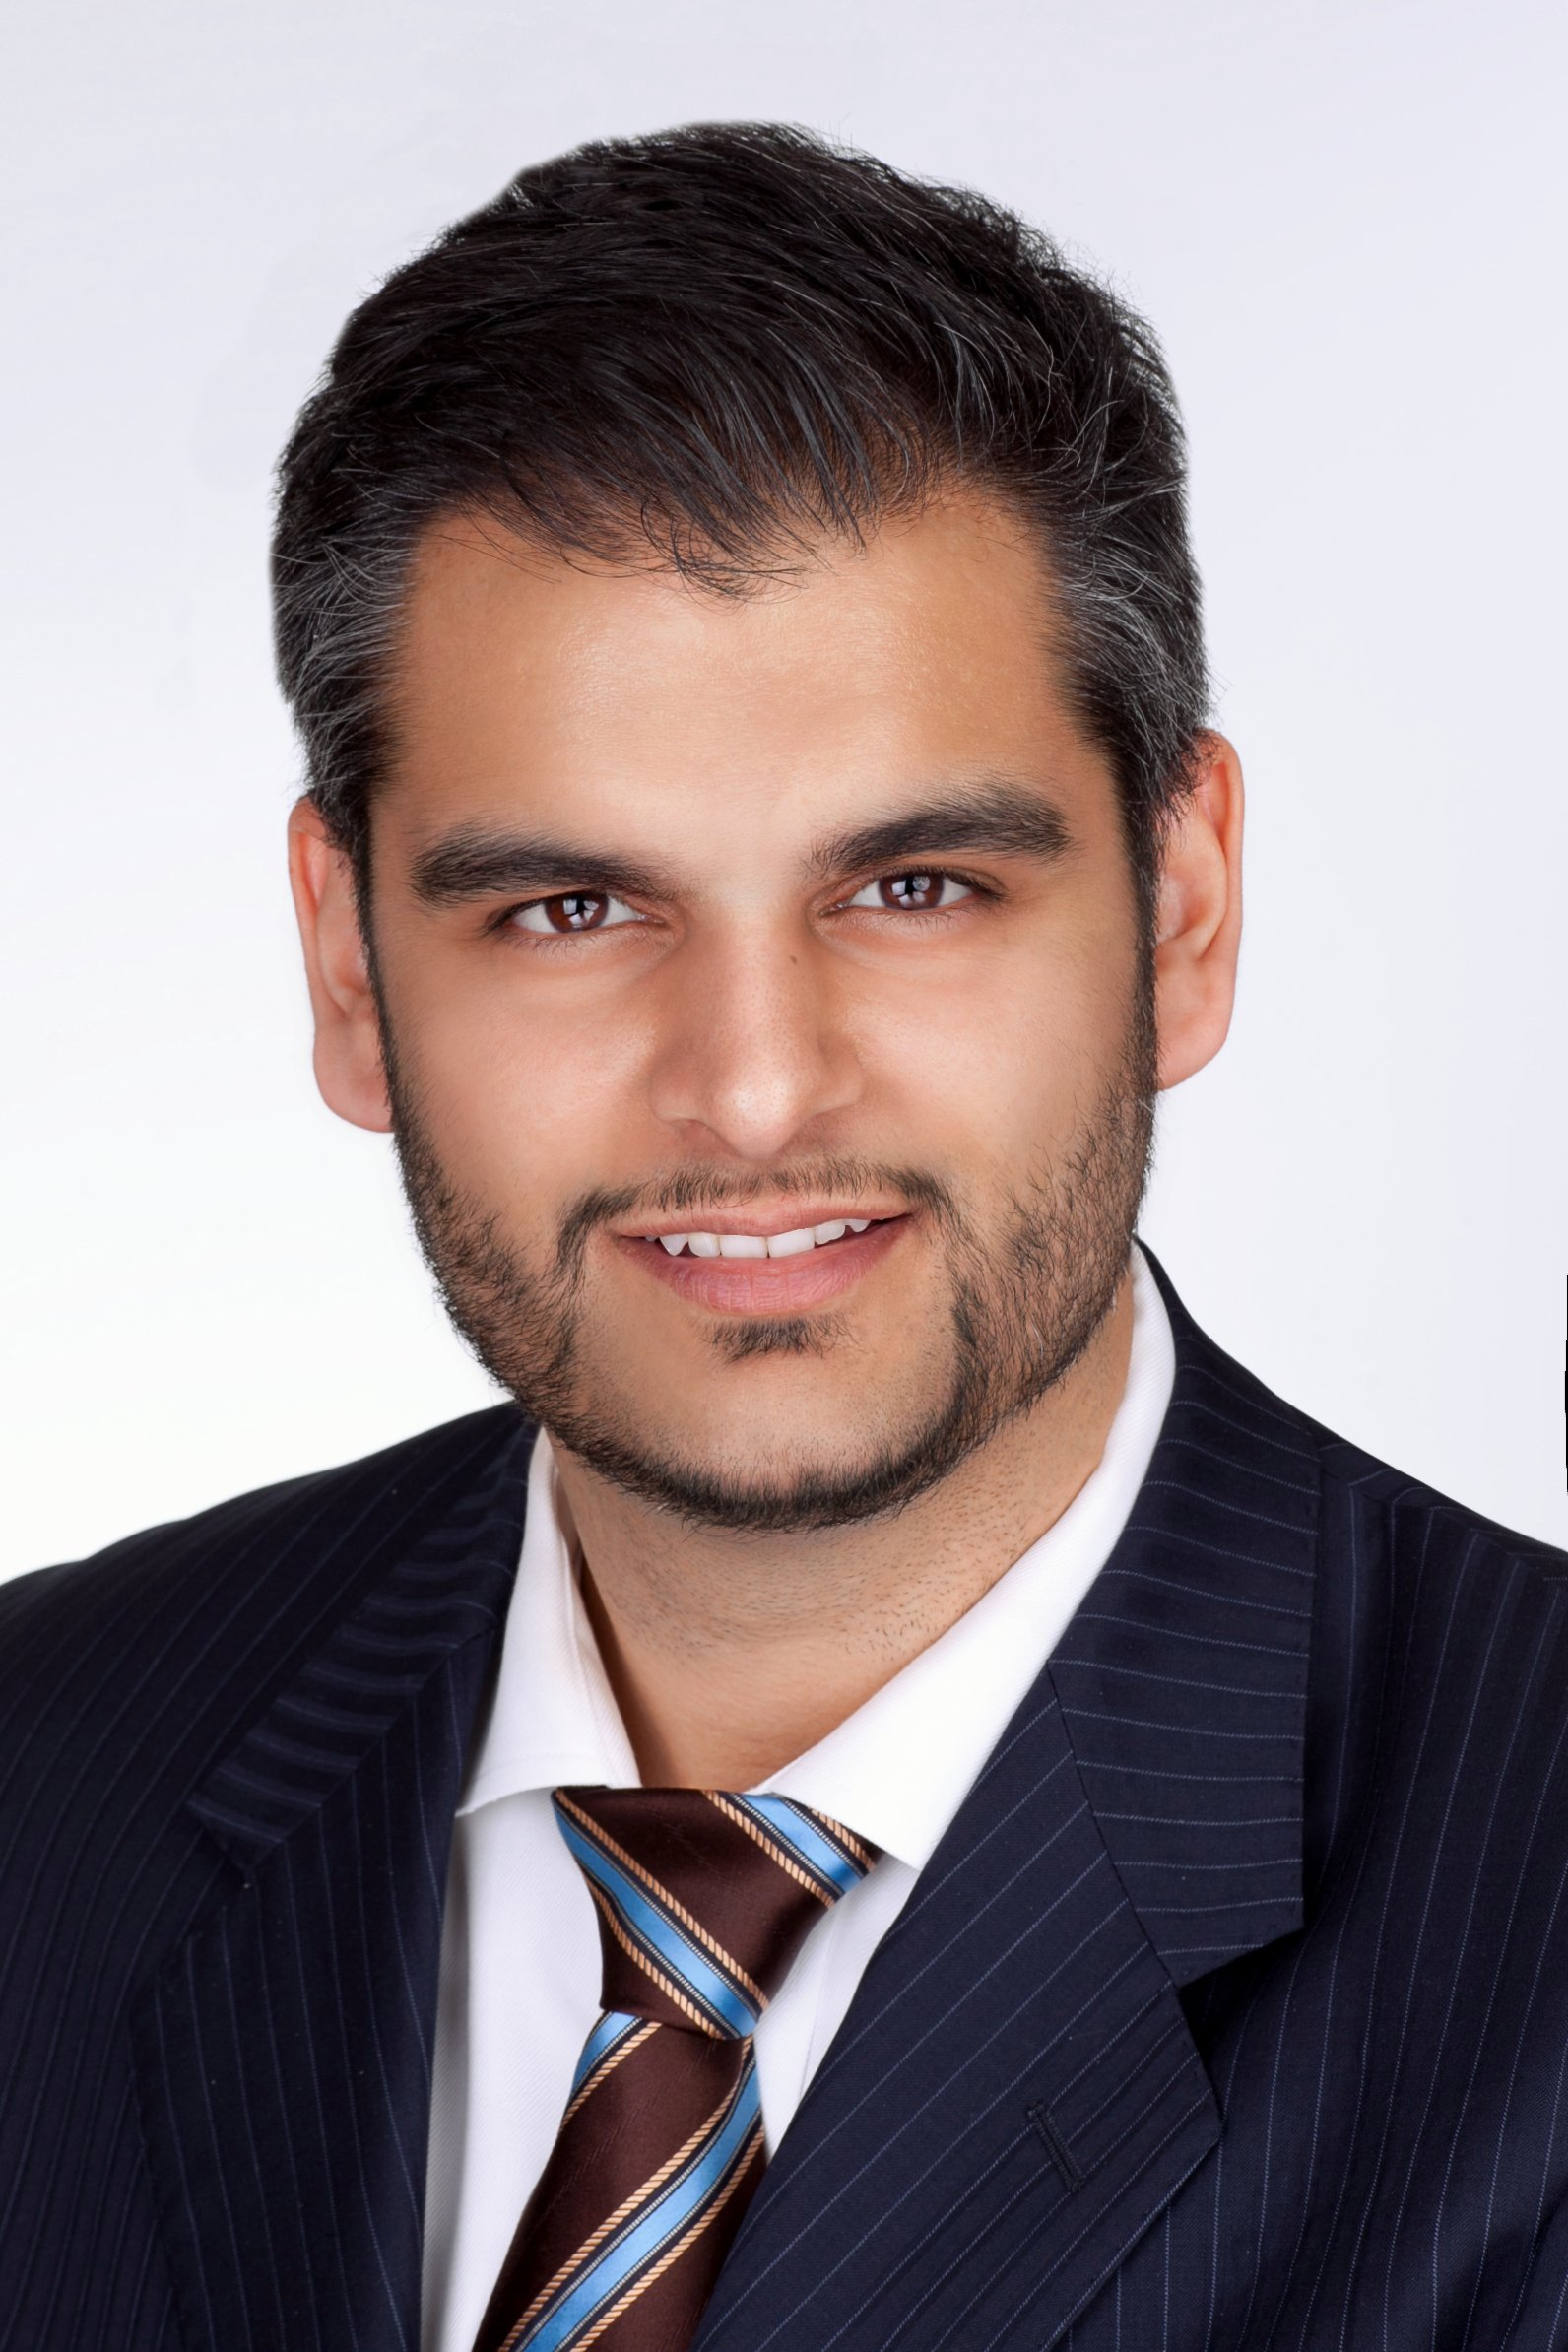 Professional headshot of man with suit and with a white background